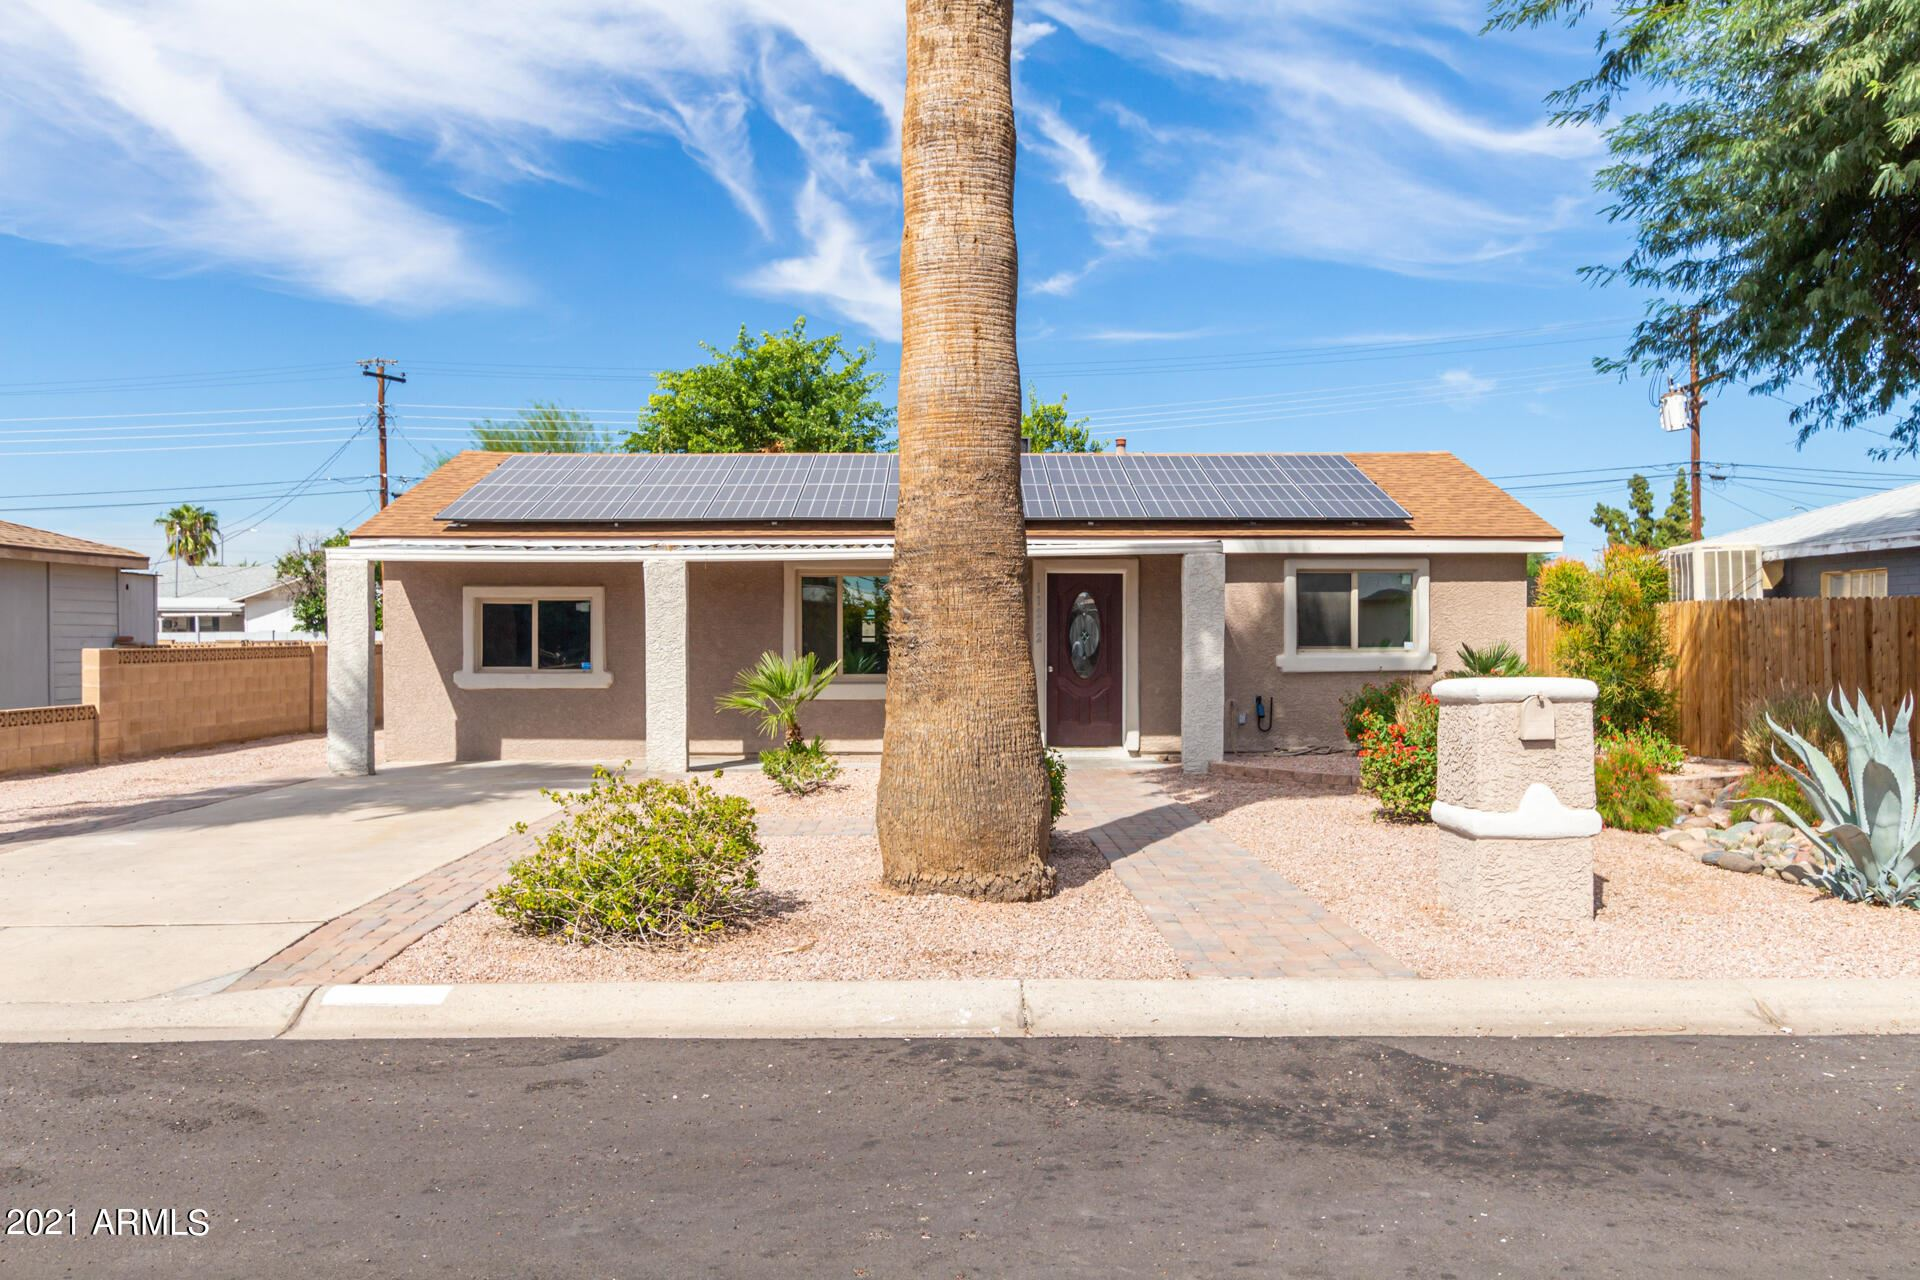 Photo of 11222 W DULUTH Avenue, Youngtown, AZ 85363 (MLS # 6299423)